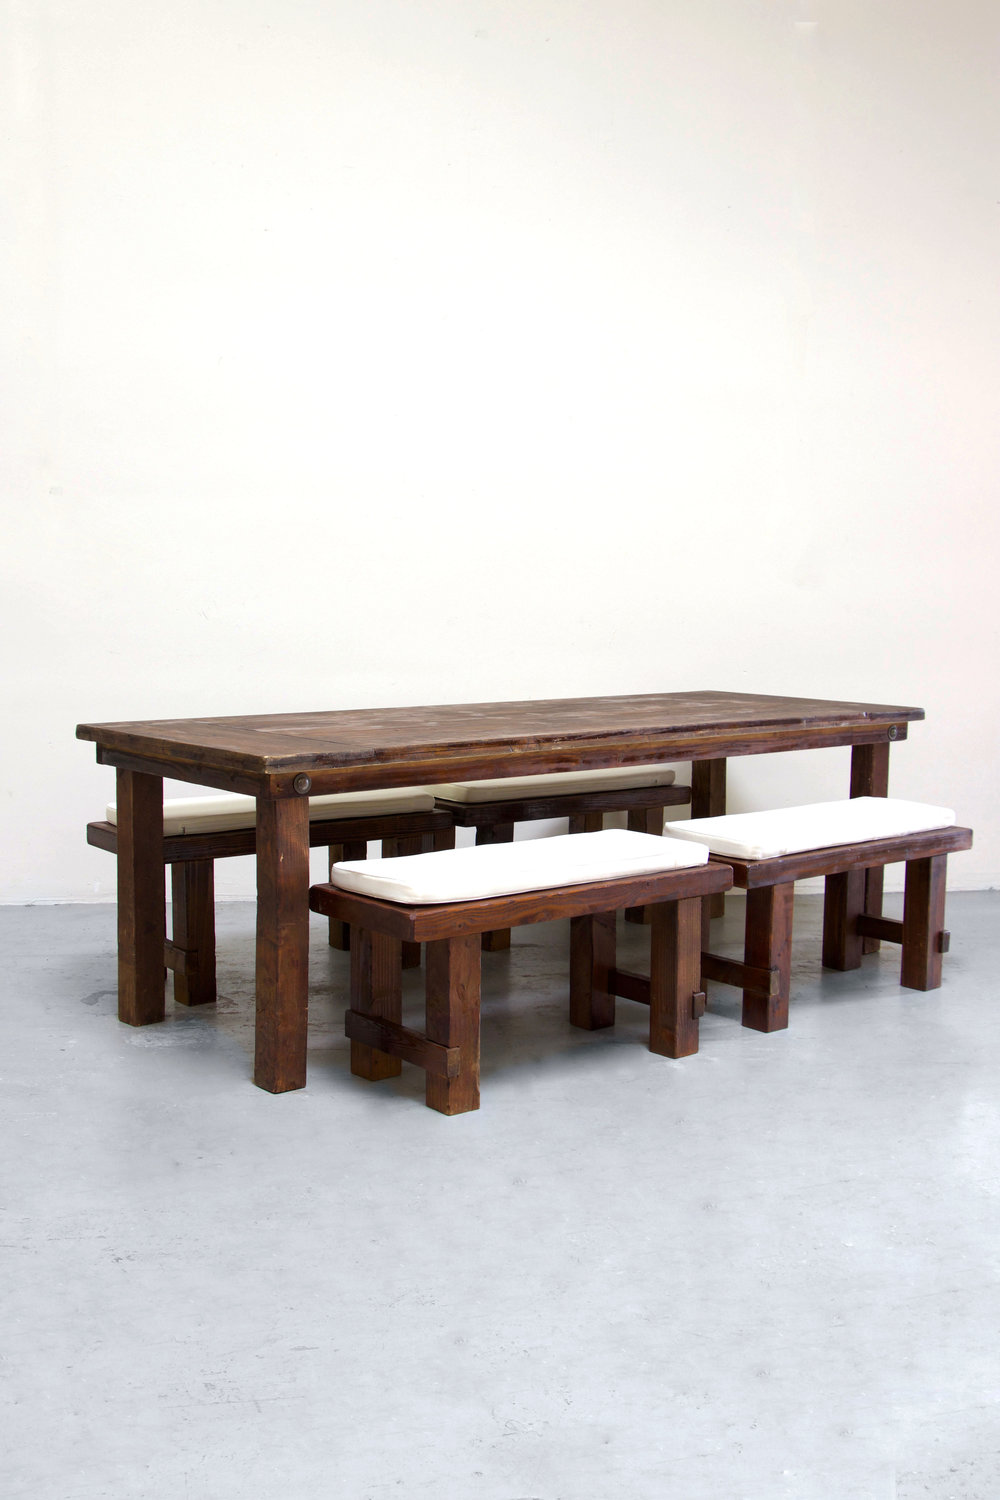 1 Mahogany Farm Table w/ 4 Short Benches $145